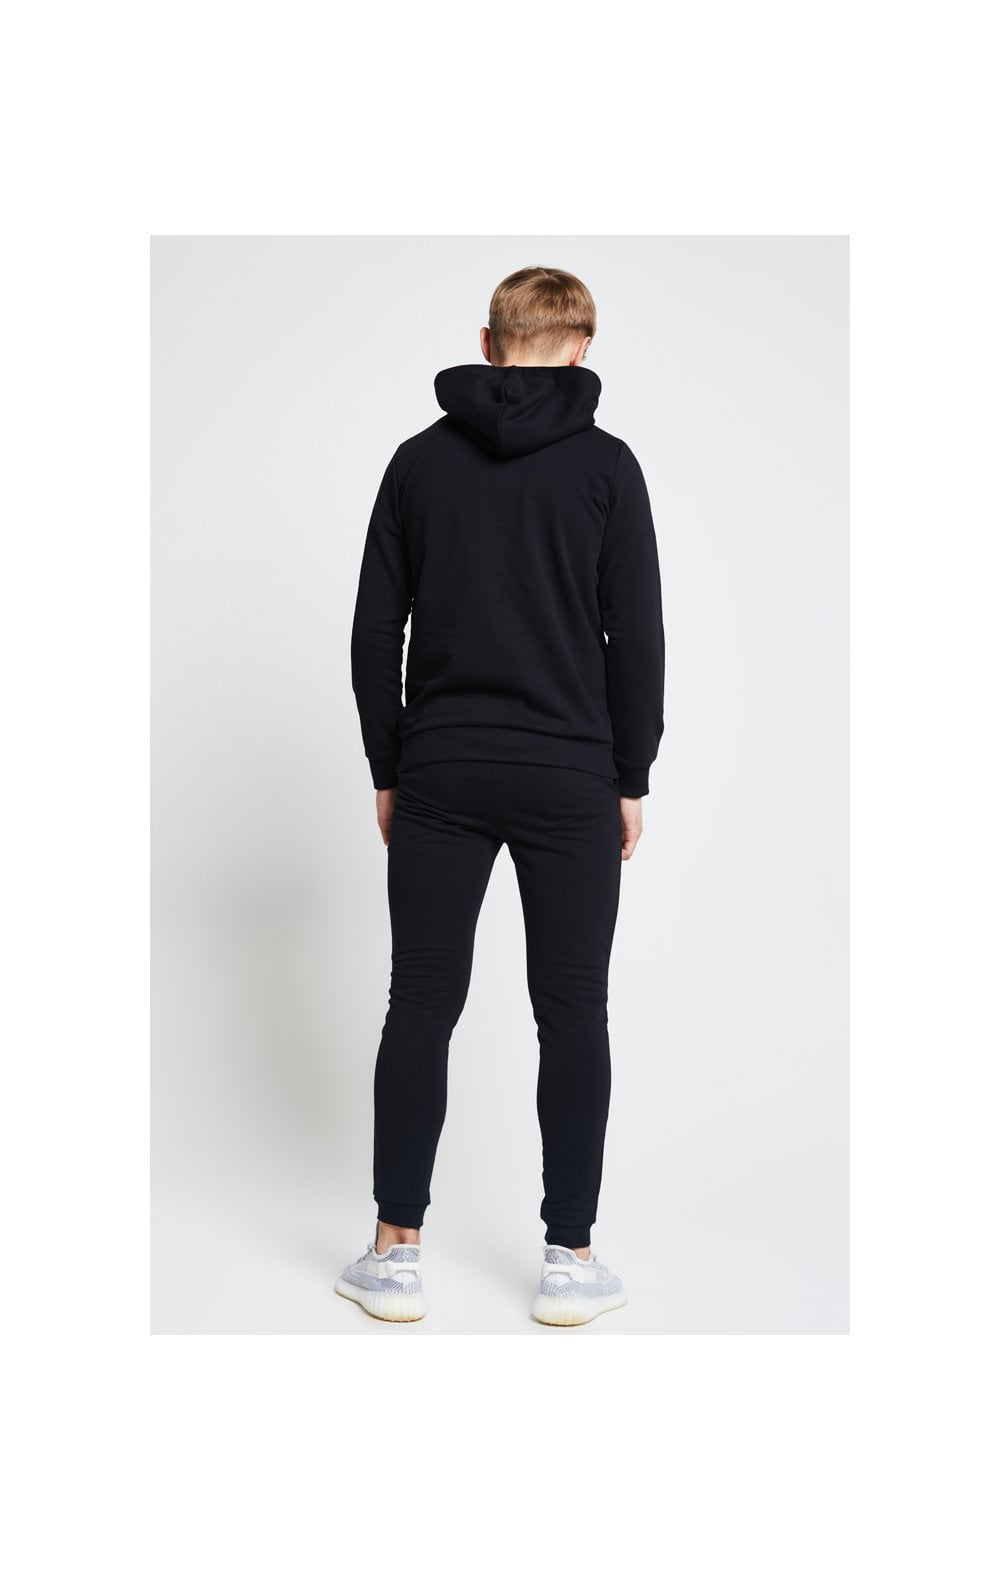 Illusive London Joggers – Black (6)